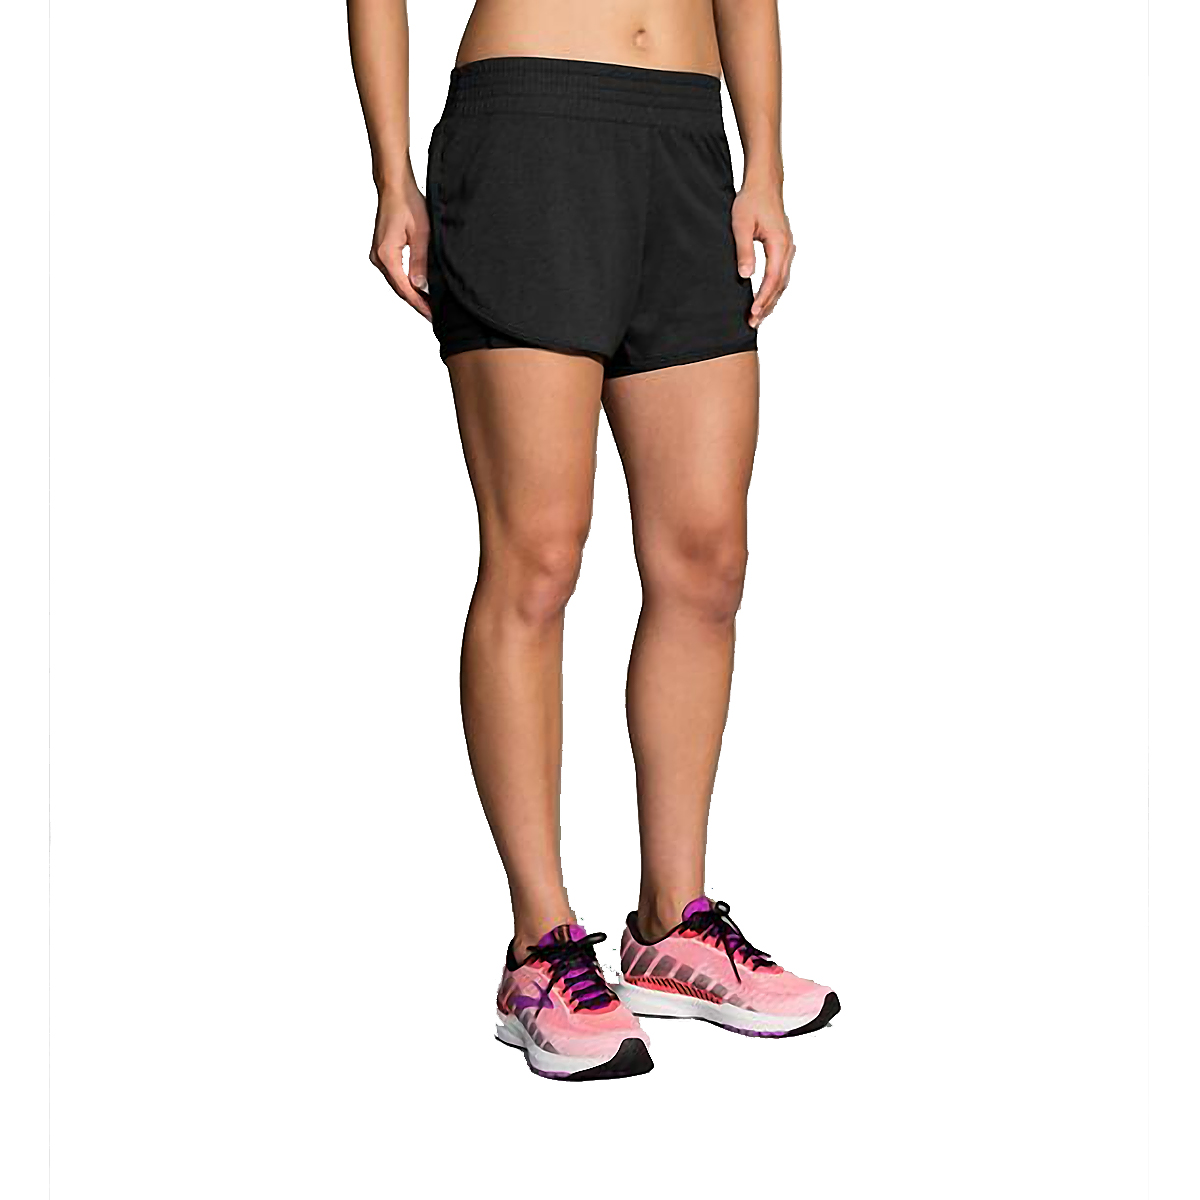 "Women's Brooks Rep 3"" 2-In-1 Short - Color: Black - Size: XS, Black, large, image 1"